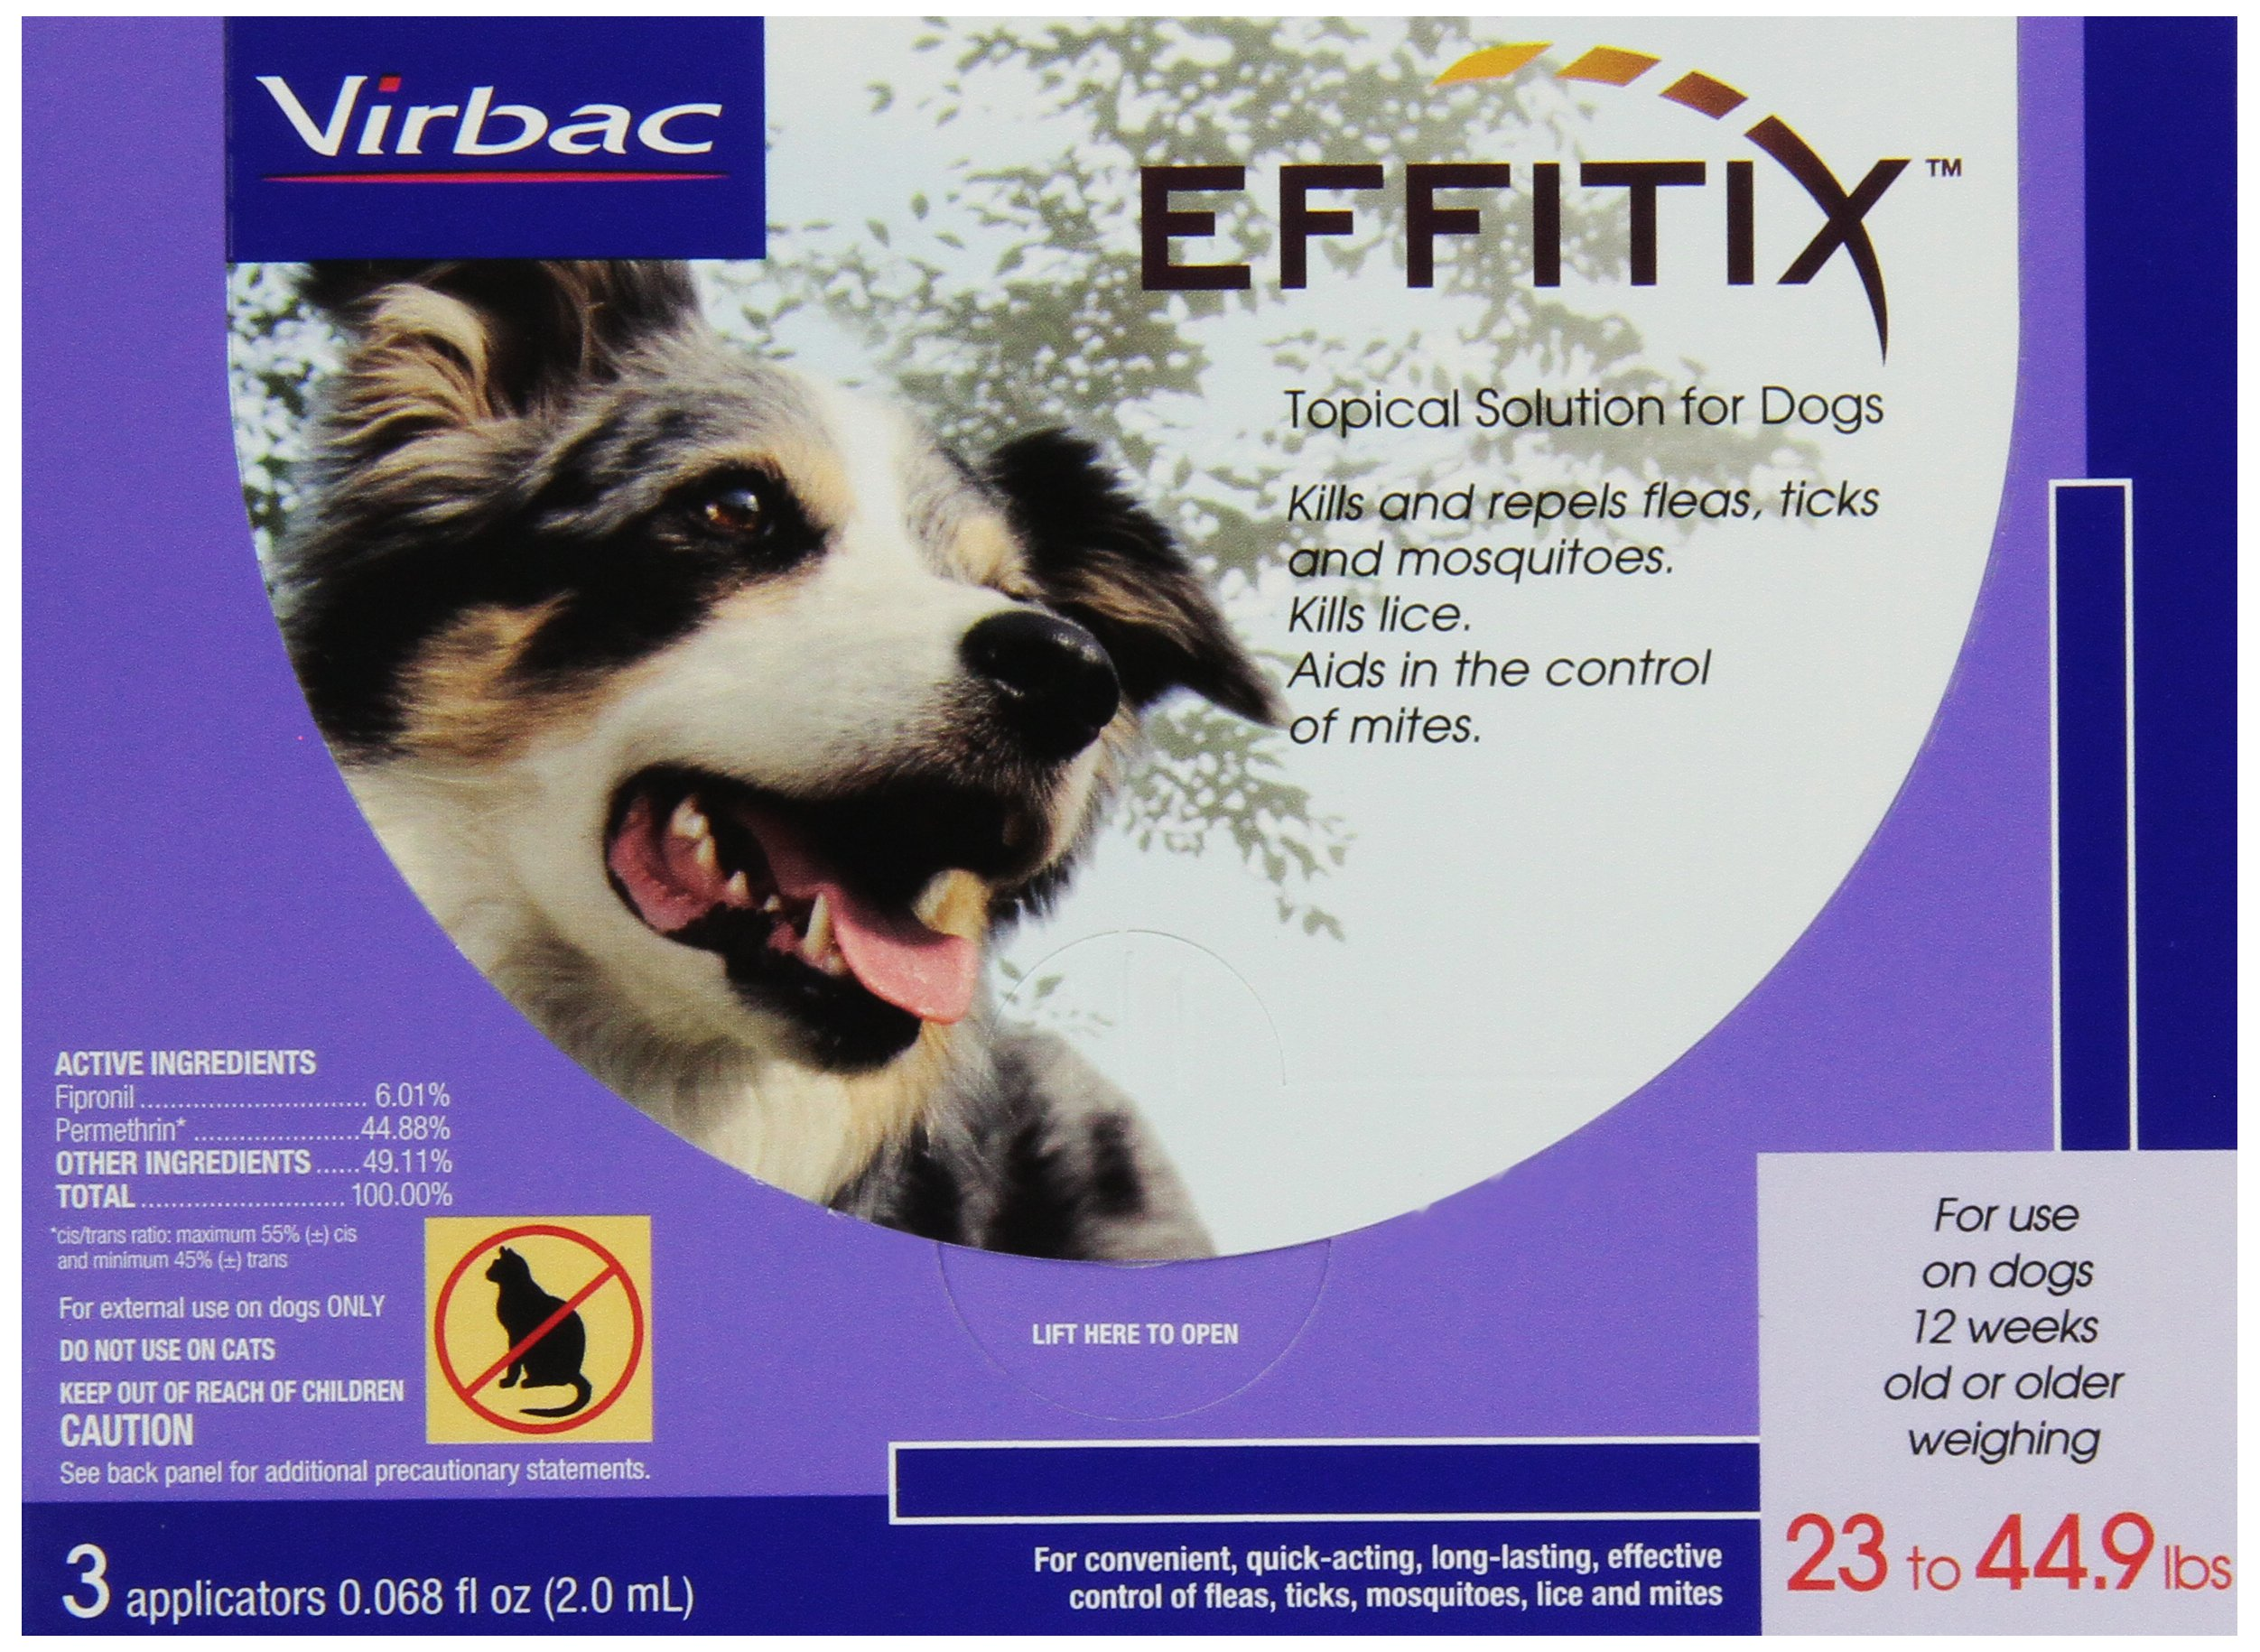 Virbac Effitix Flea/Tick Topical Solution, Medium Dog, 3 Count by Virbac (Image #1)